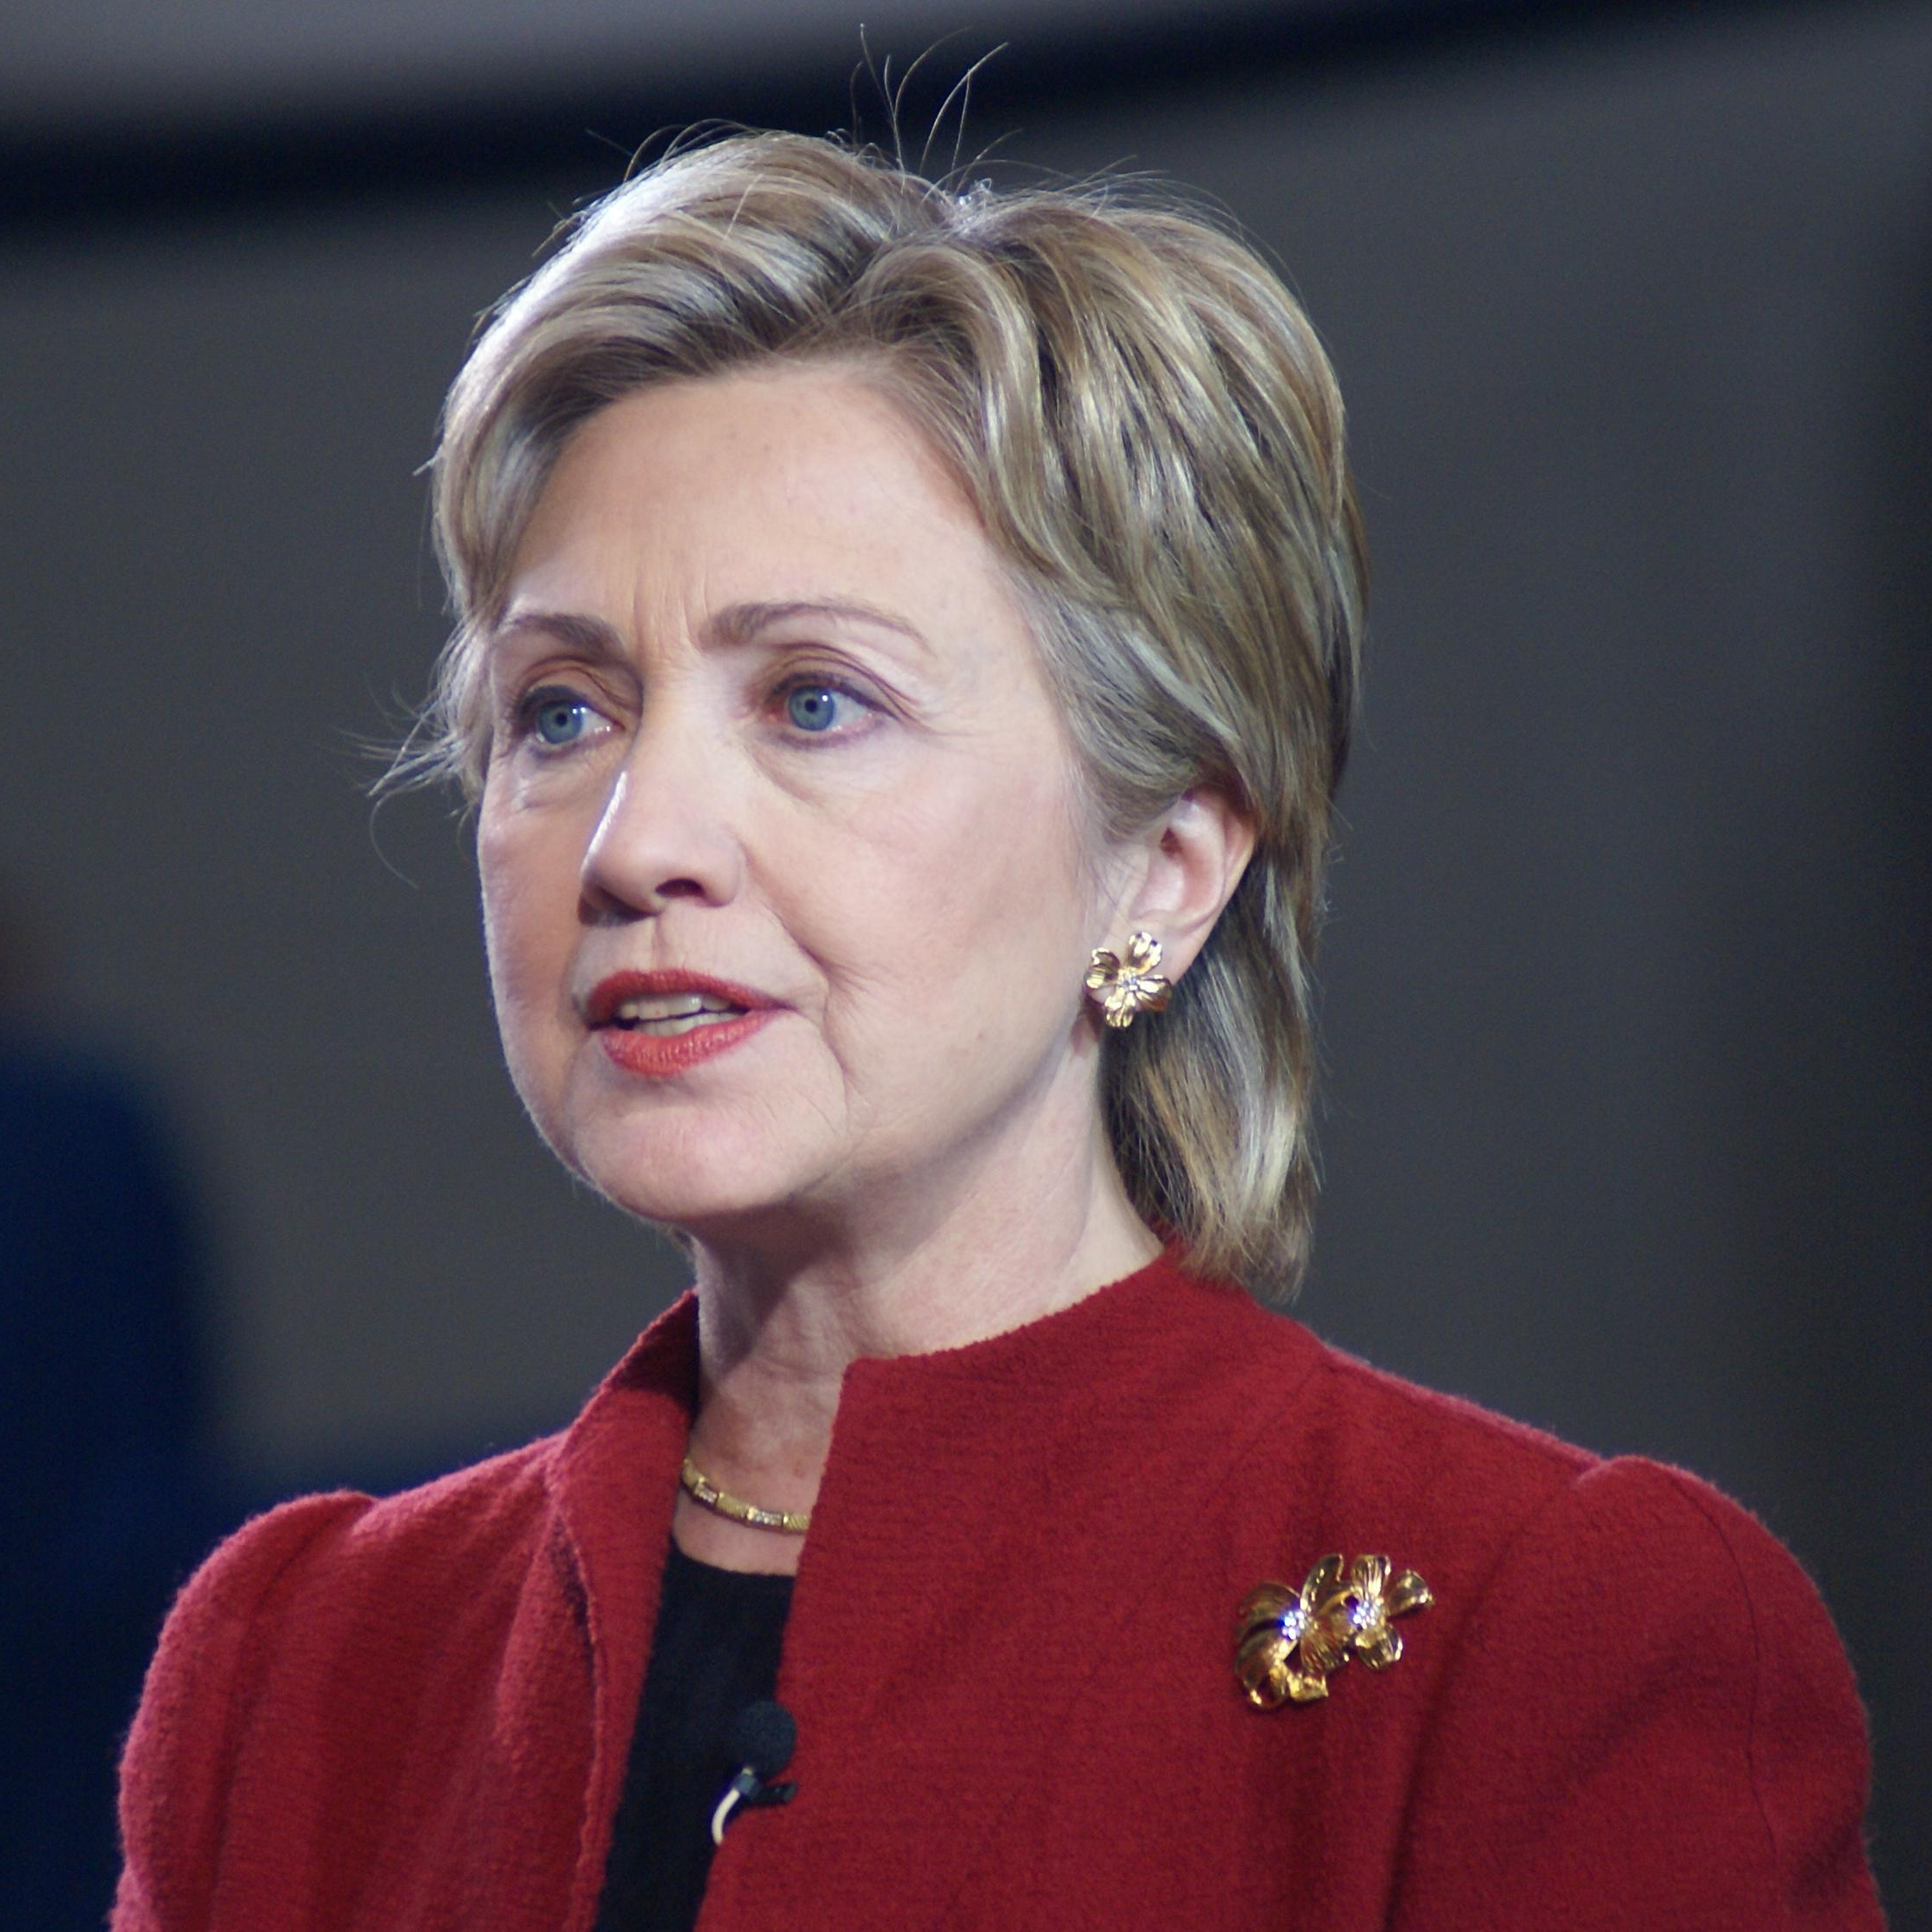 File:Hillary Clinton.jpg - Wikipedia, the free encyclopedia